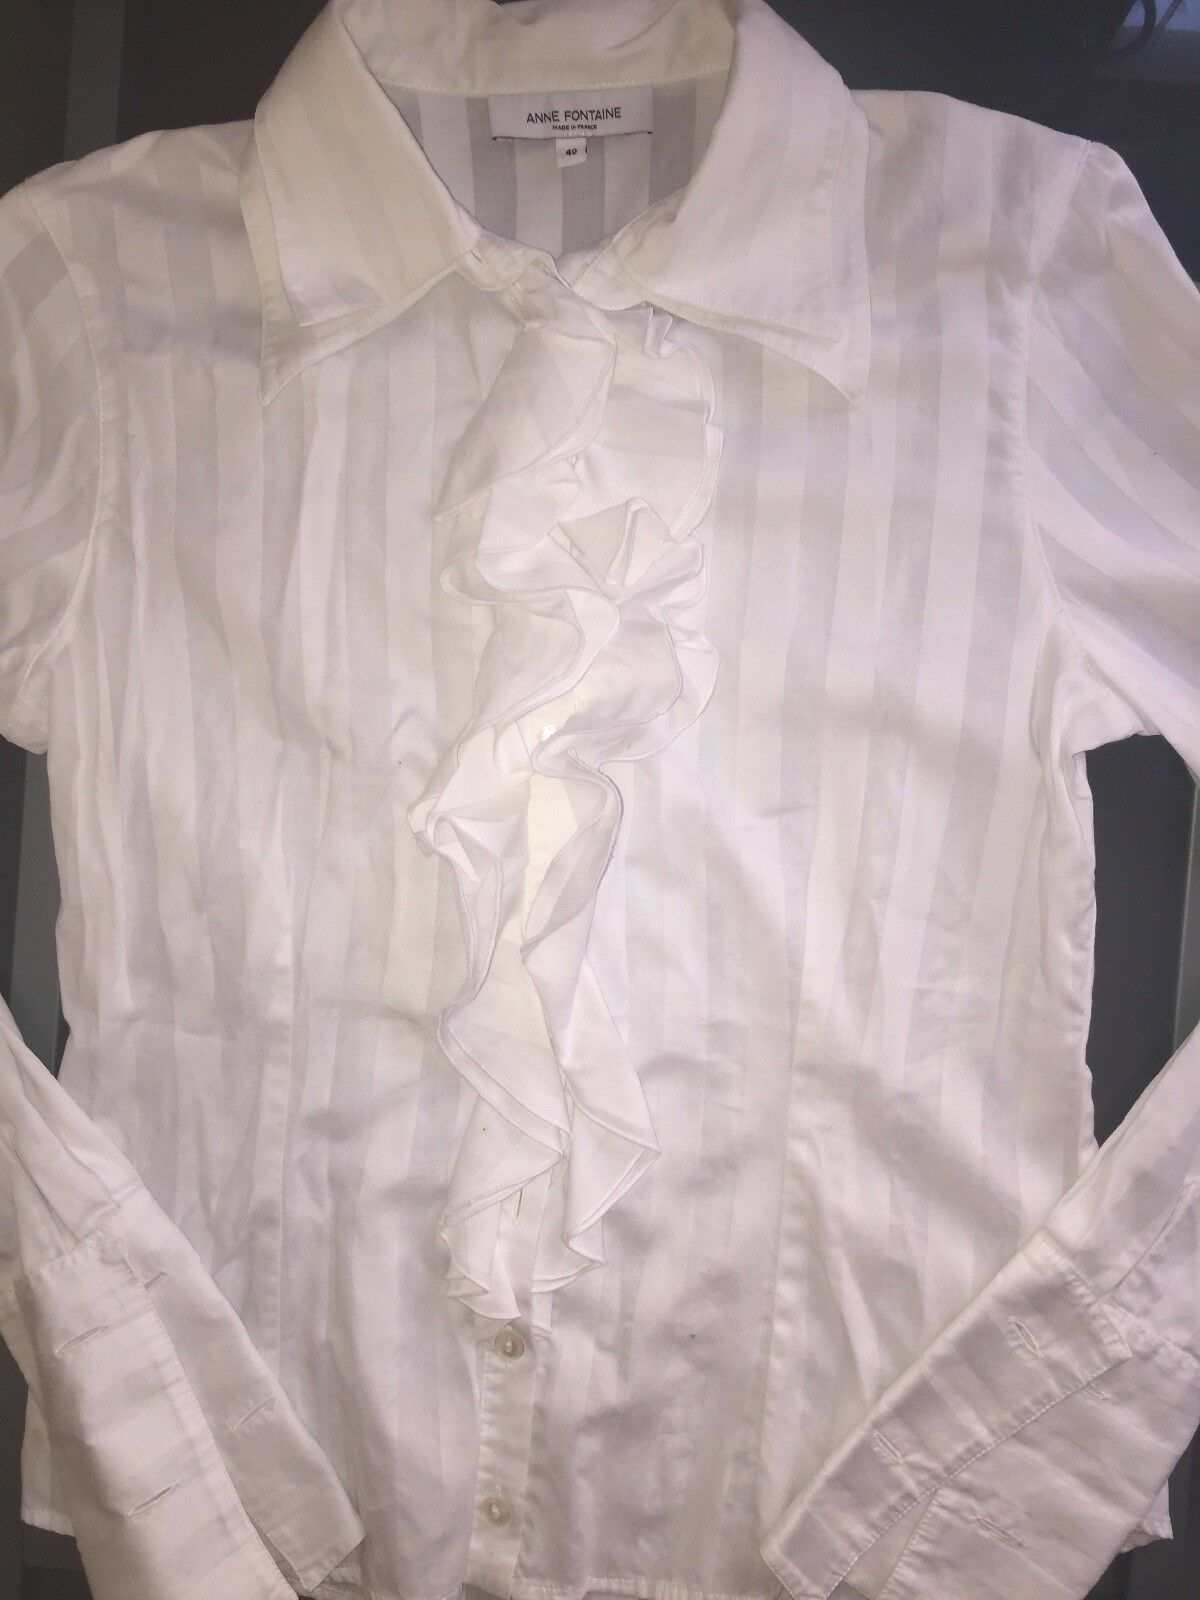 Anne Fontaine White Ruffled Blouse-Sz.40  - image 4